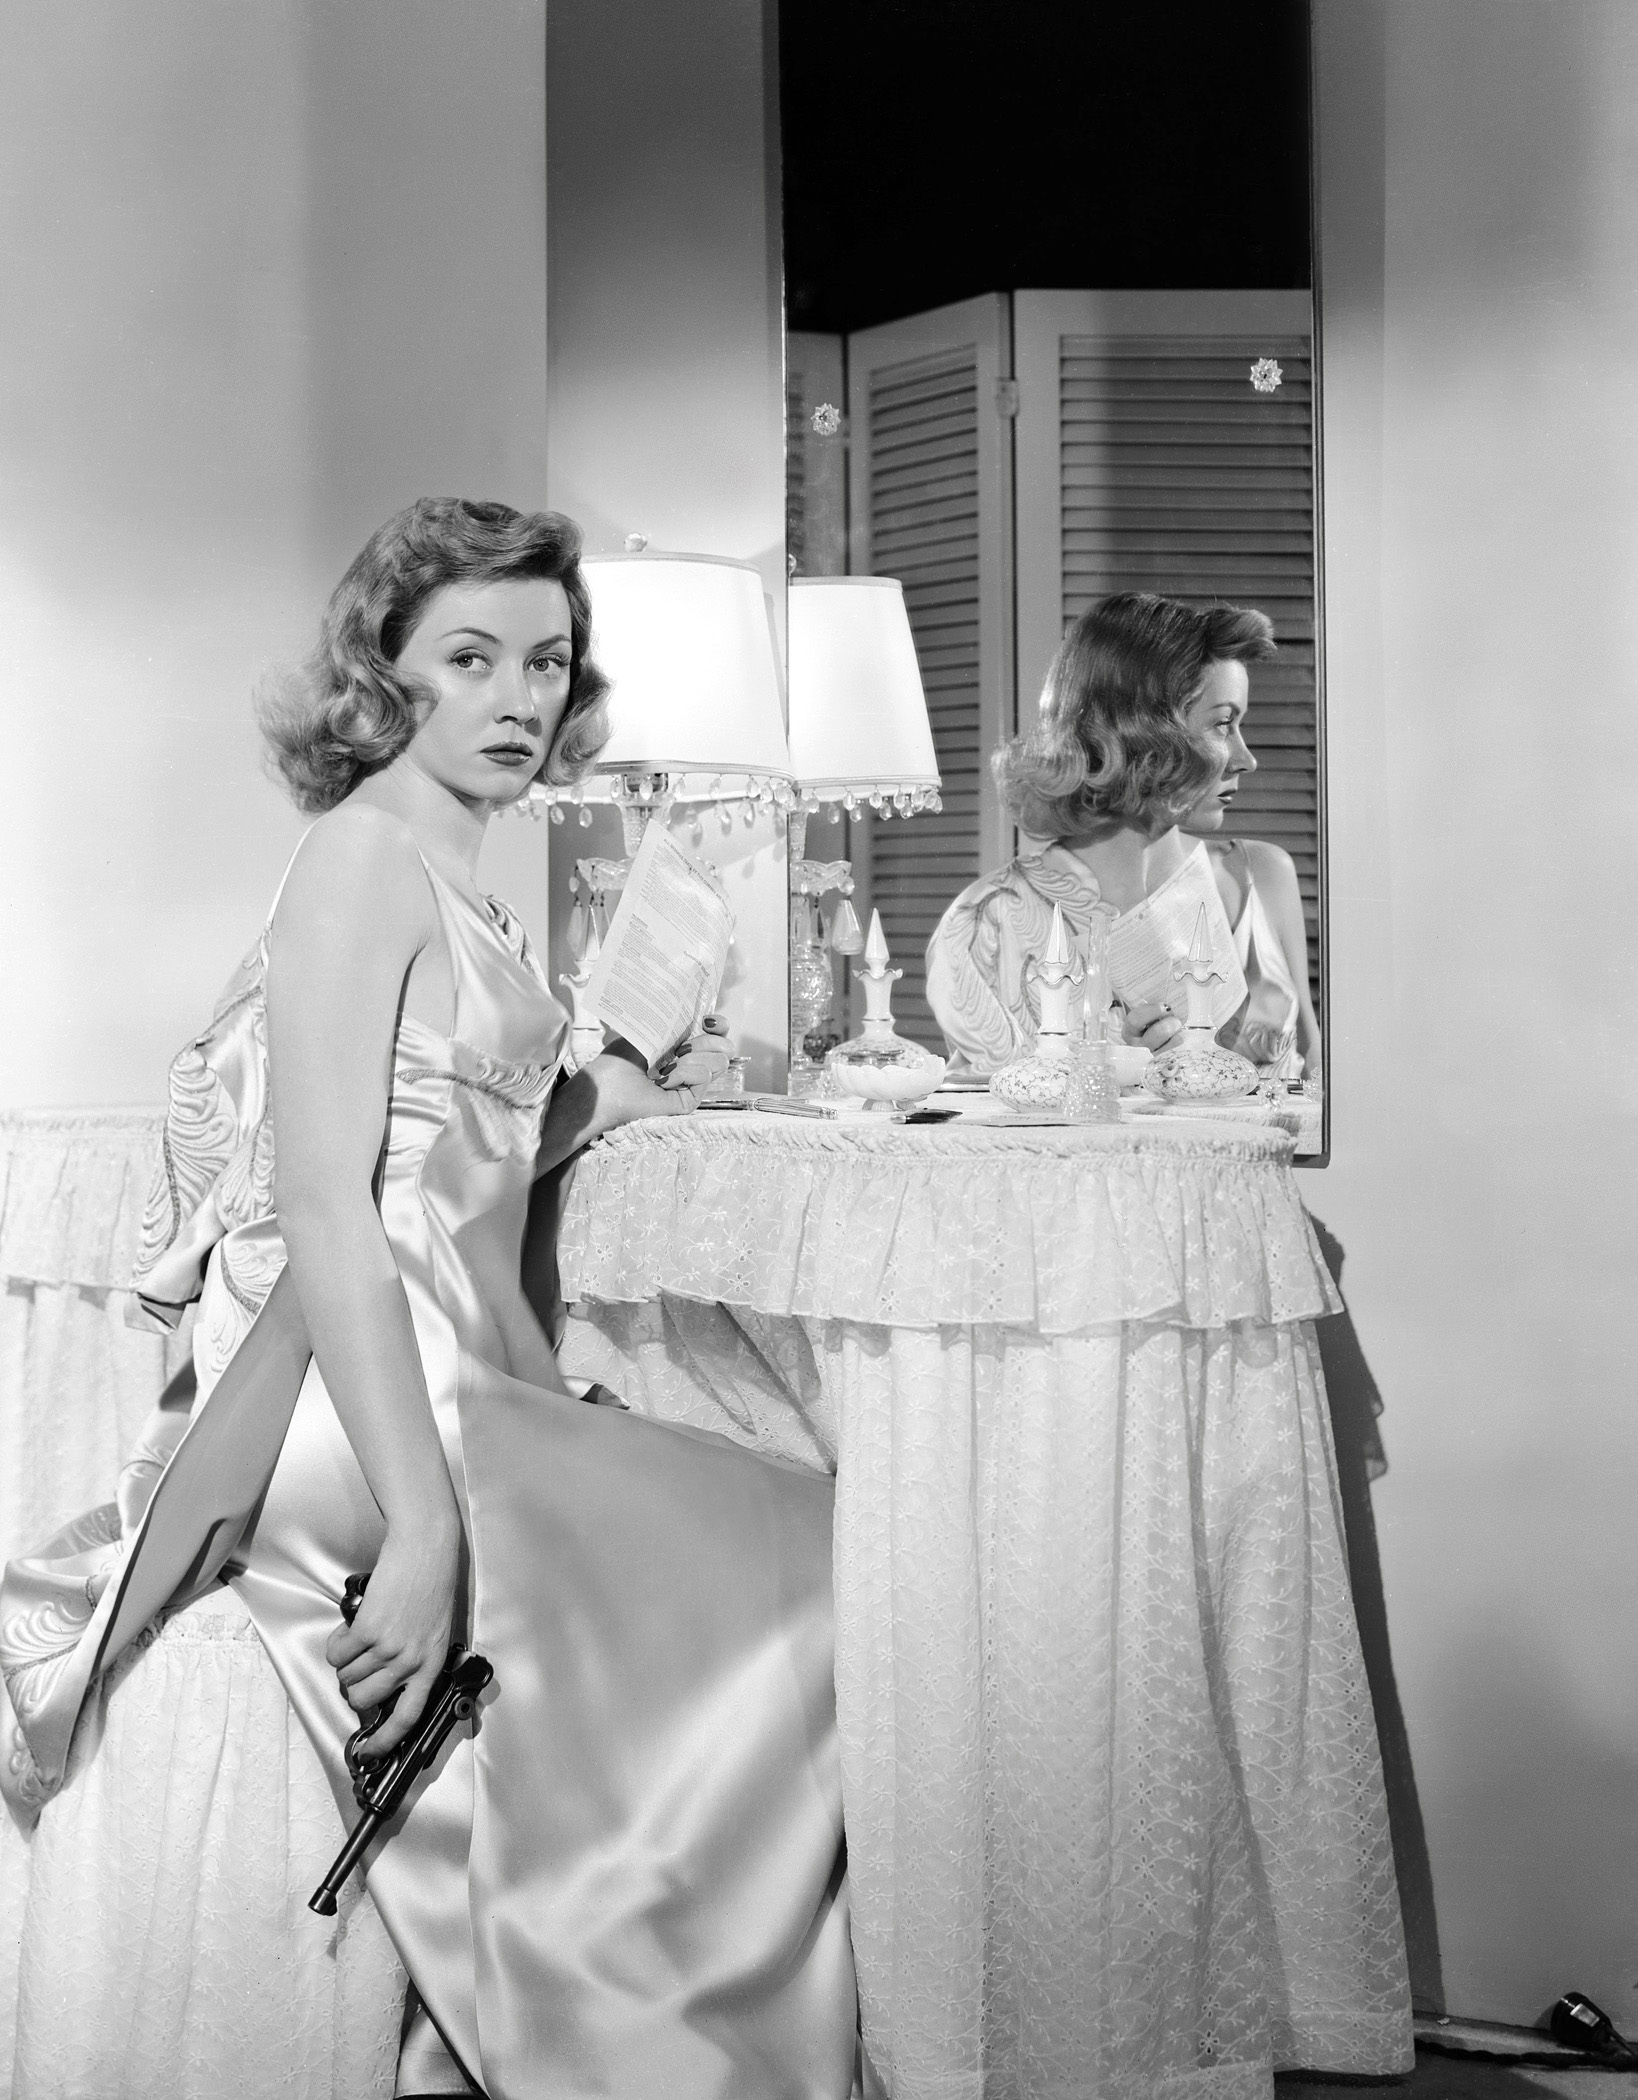 002-gloria-grahame-theredlist.jpg